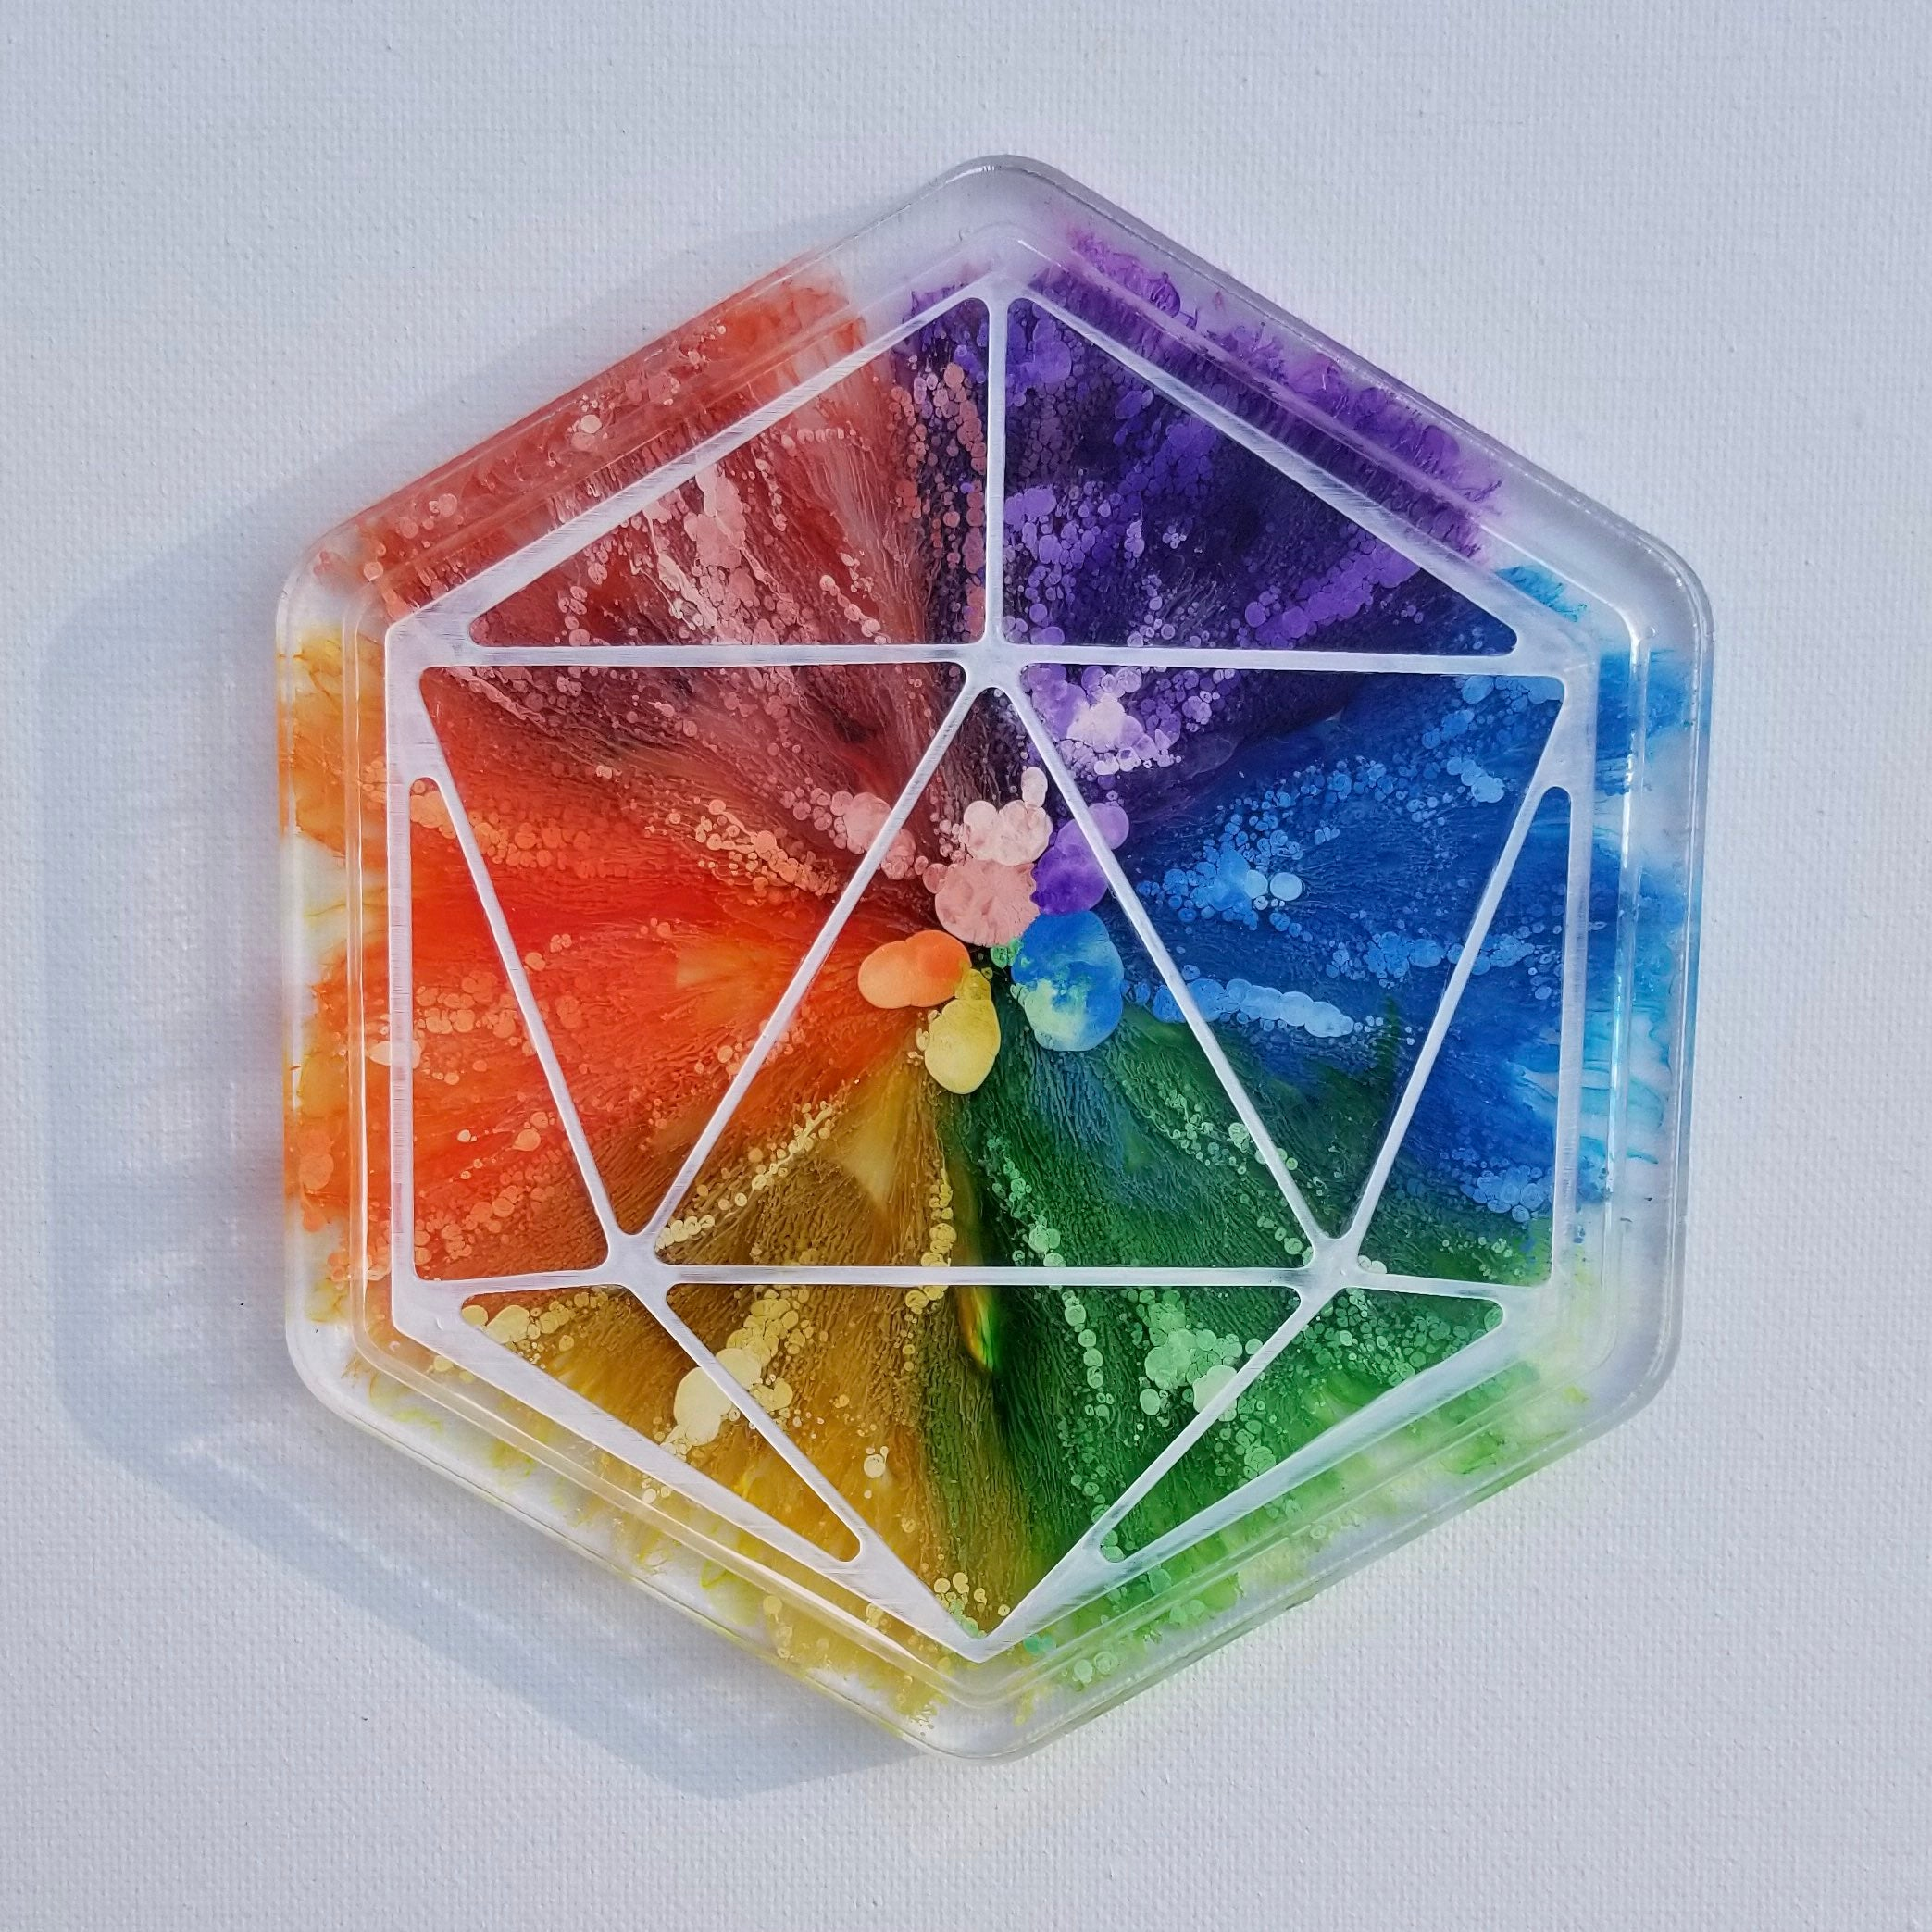 This is a handmade rainbow dice rolling tray with white ink. The rainbow colors look like sea anemones encased in clear resin.